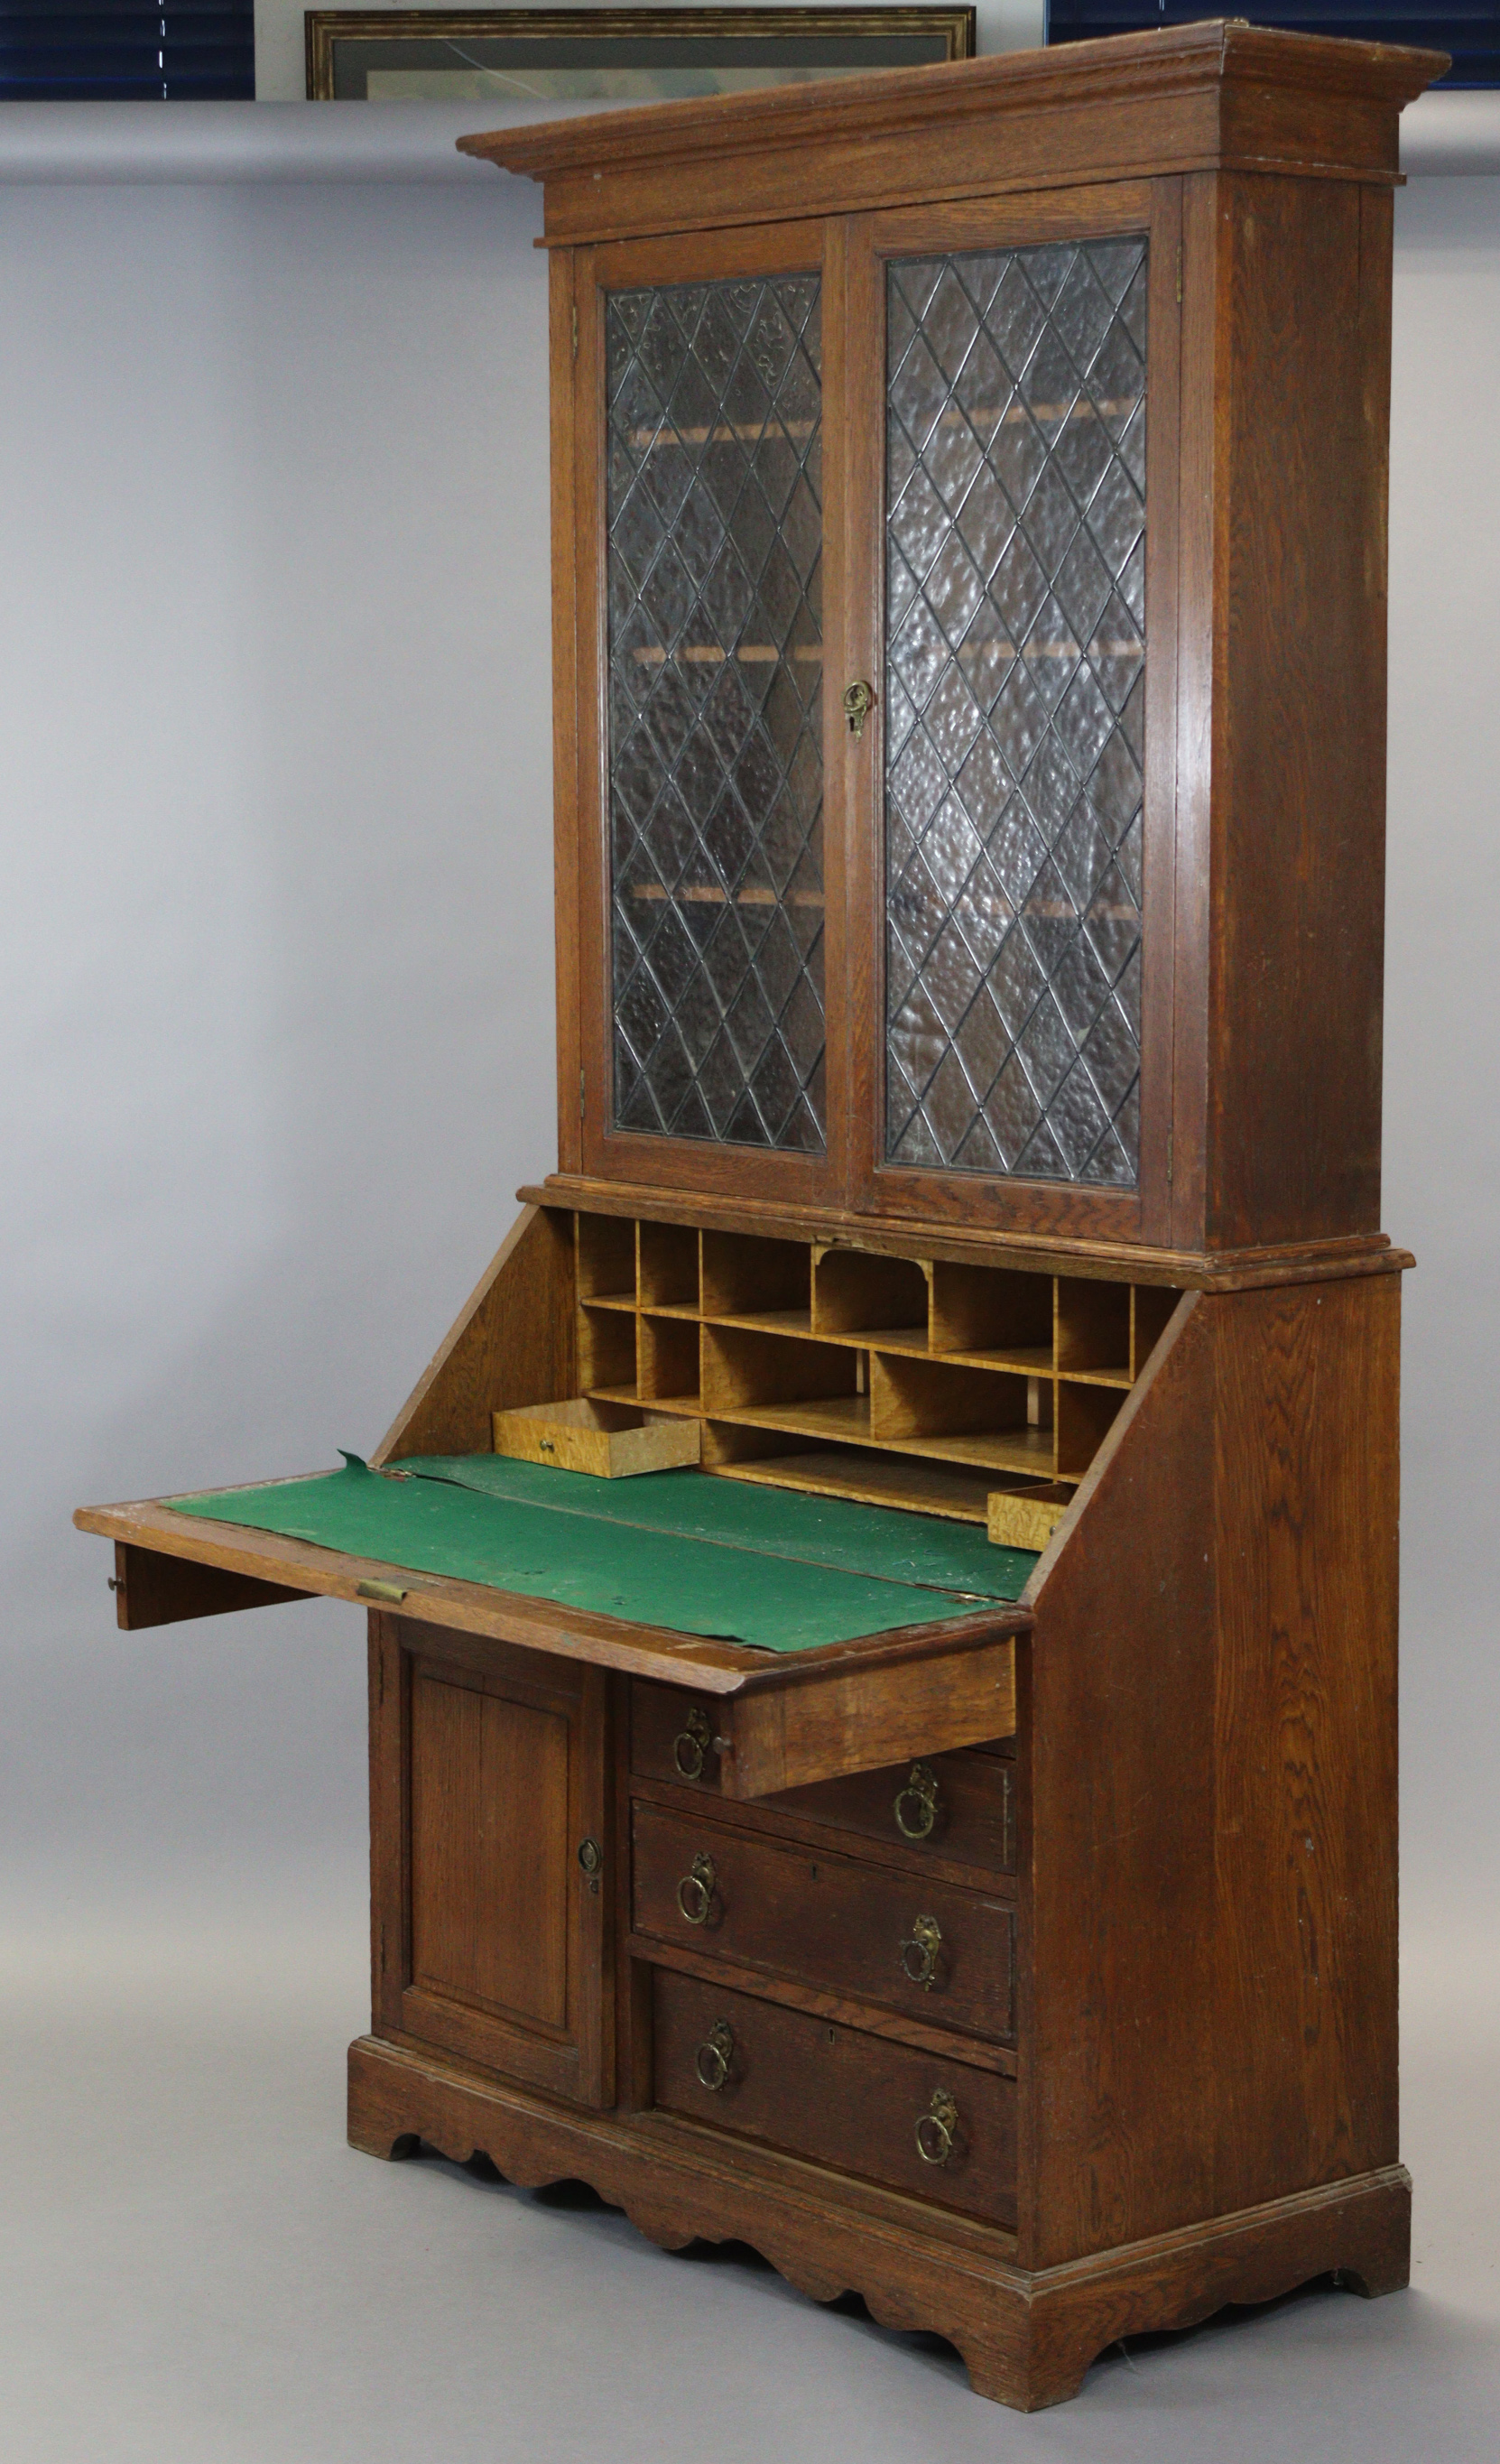 A late 19th/early 20th century oak bureau-bookcase with moulded cornice above a pair of leaded - Image 3 of 7